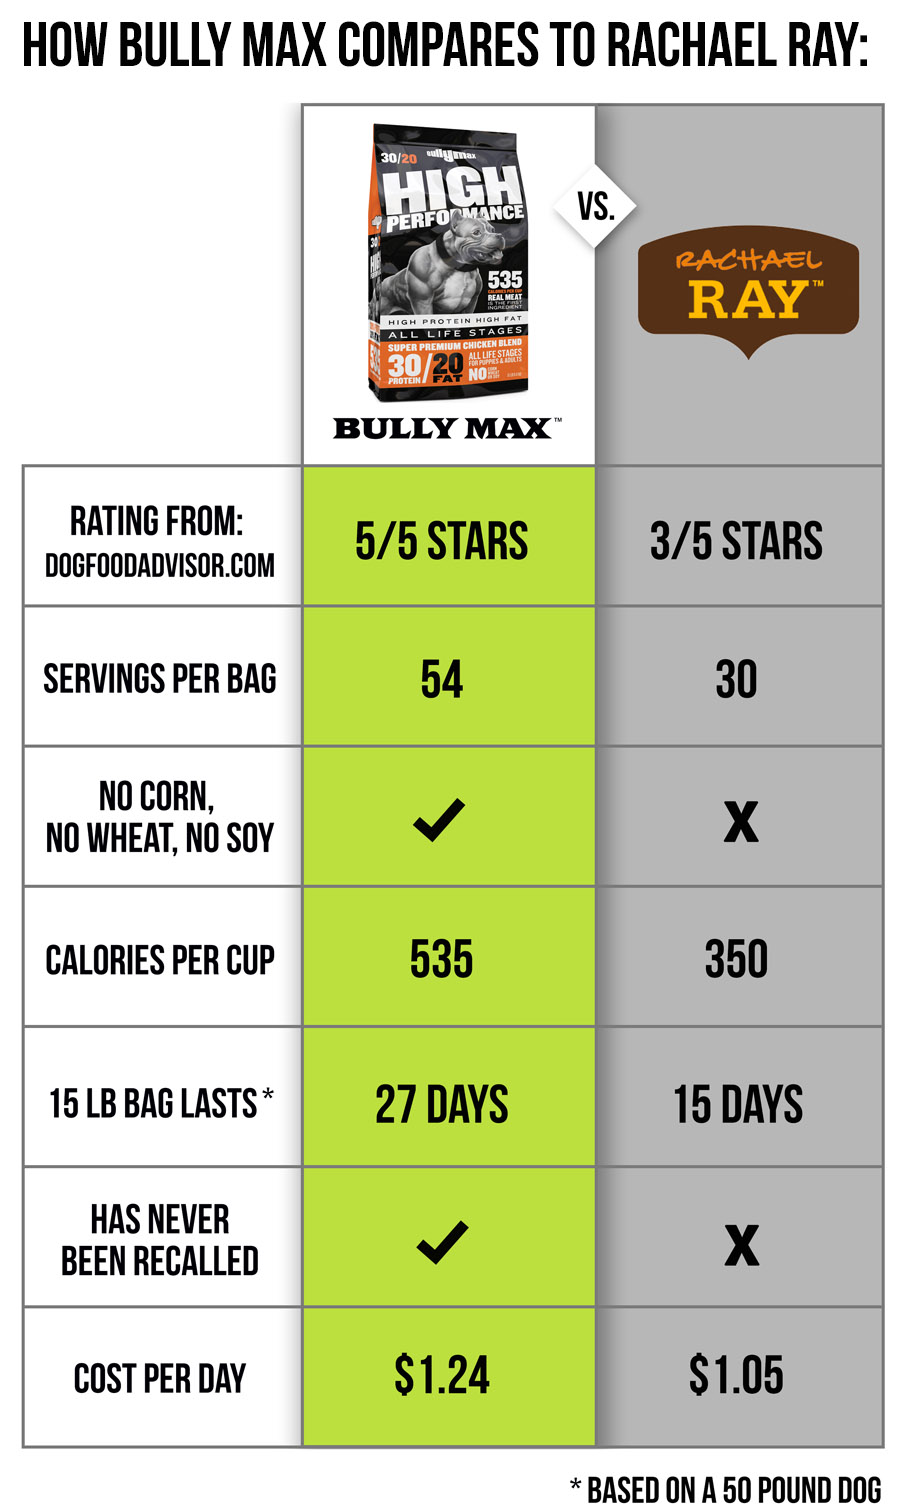 rachael-ray-dog-food-comparison.jpg